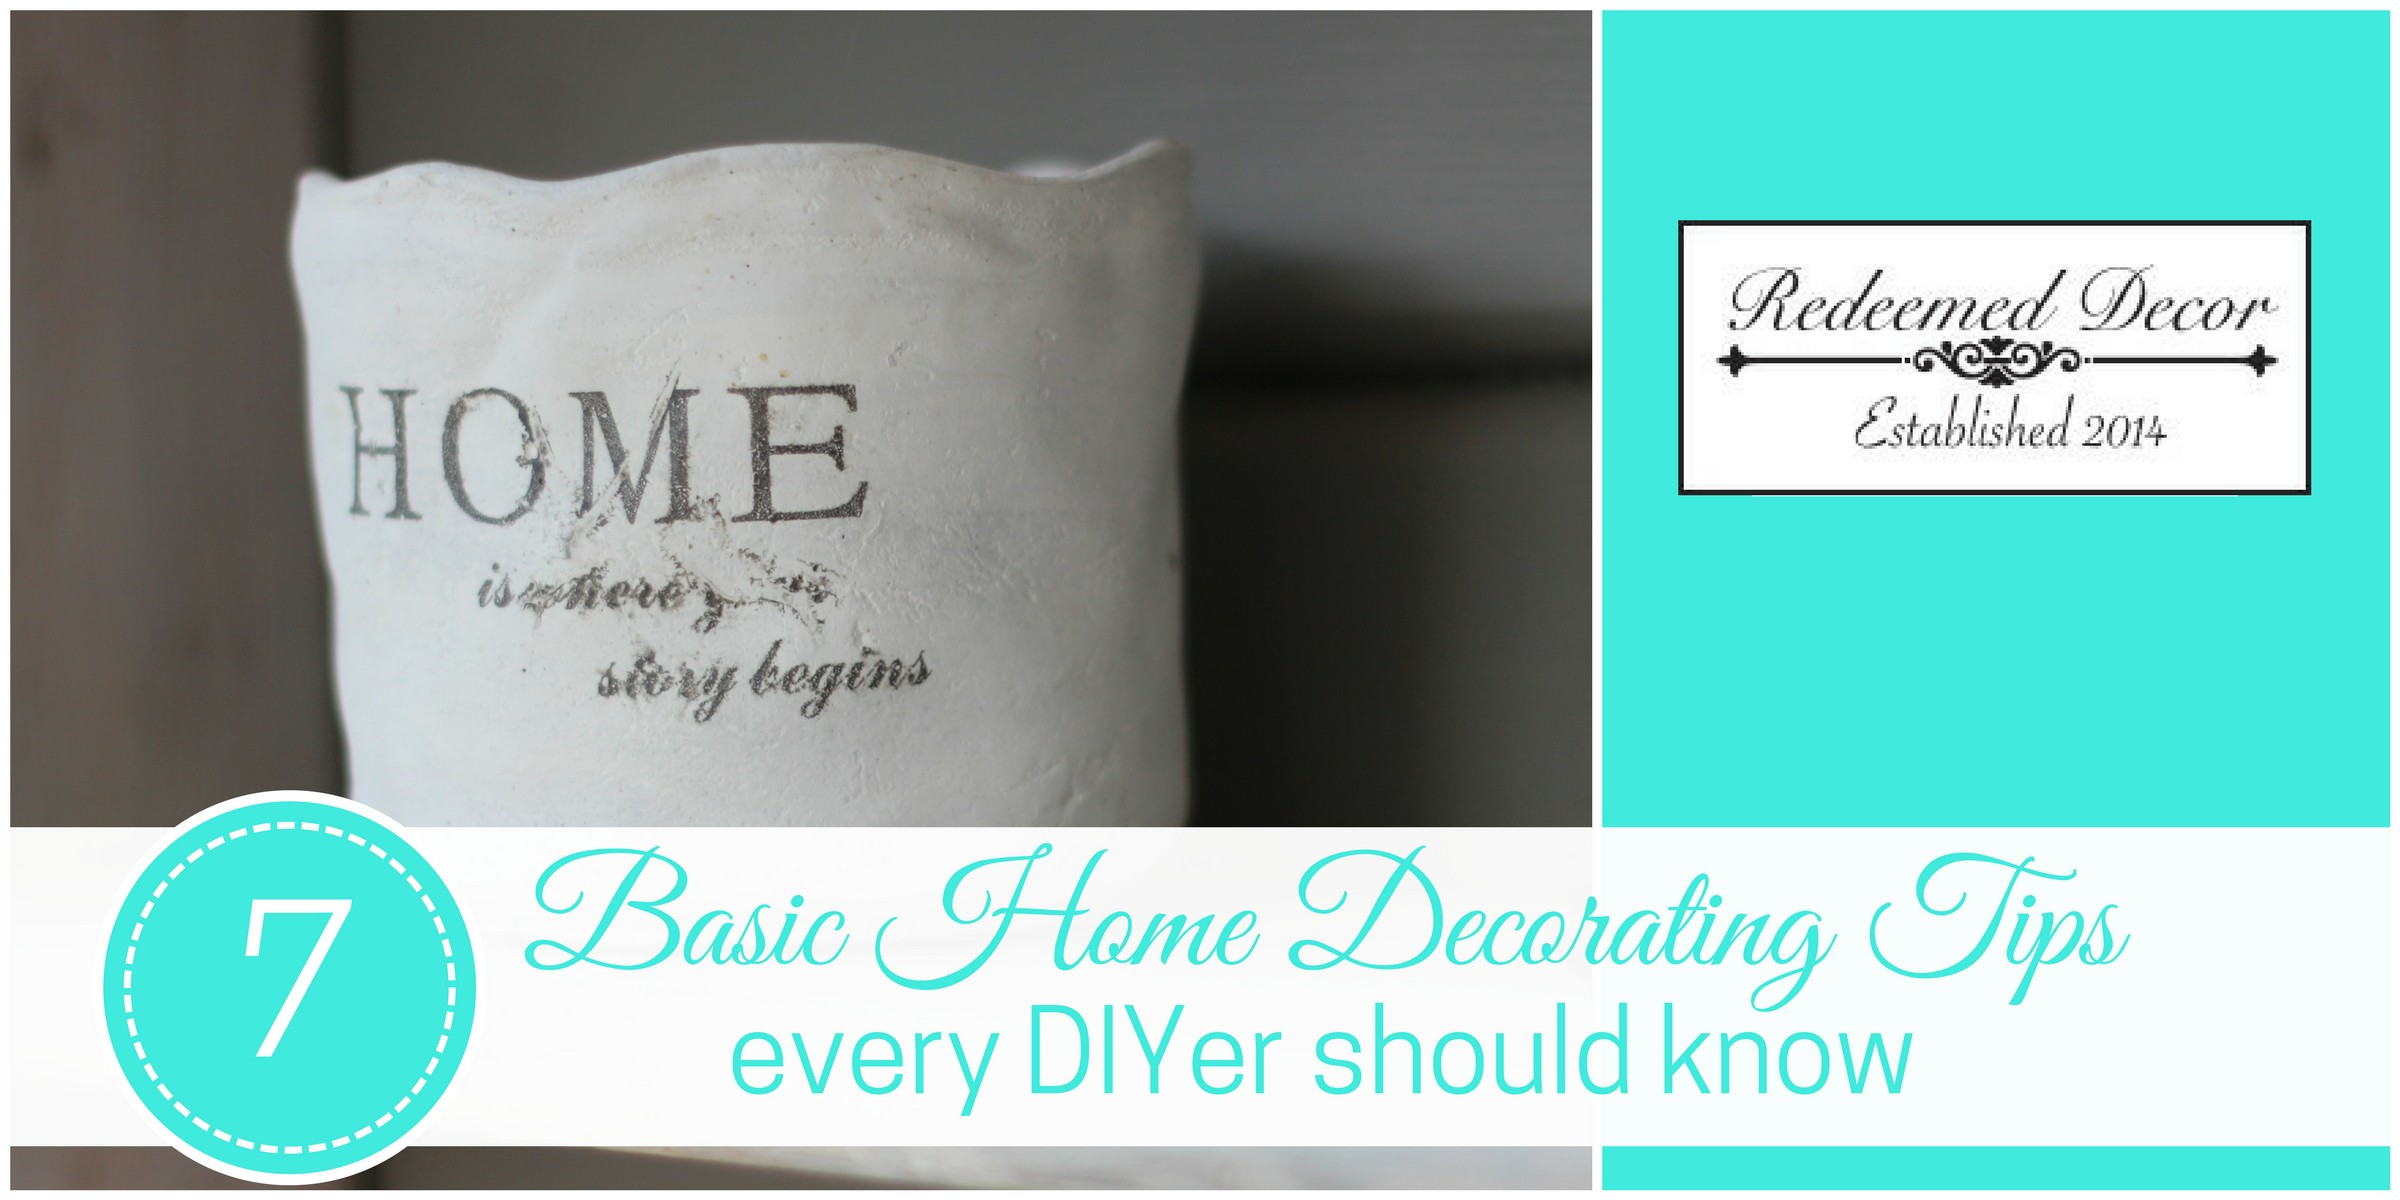 7 basic home decorating tips every diyer should know